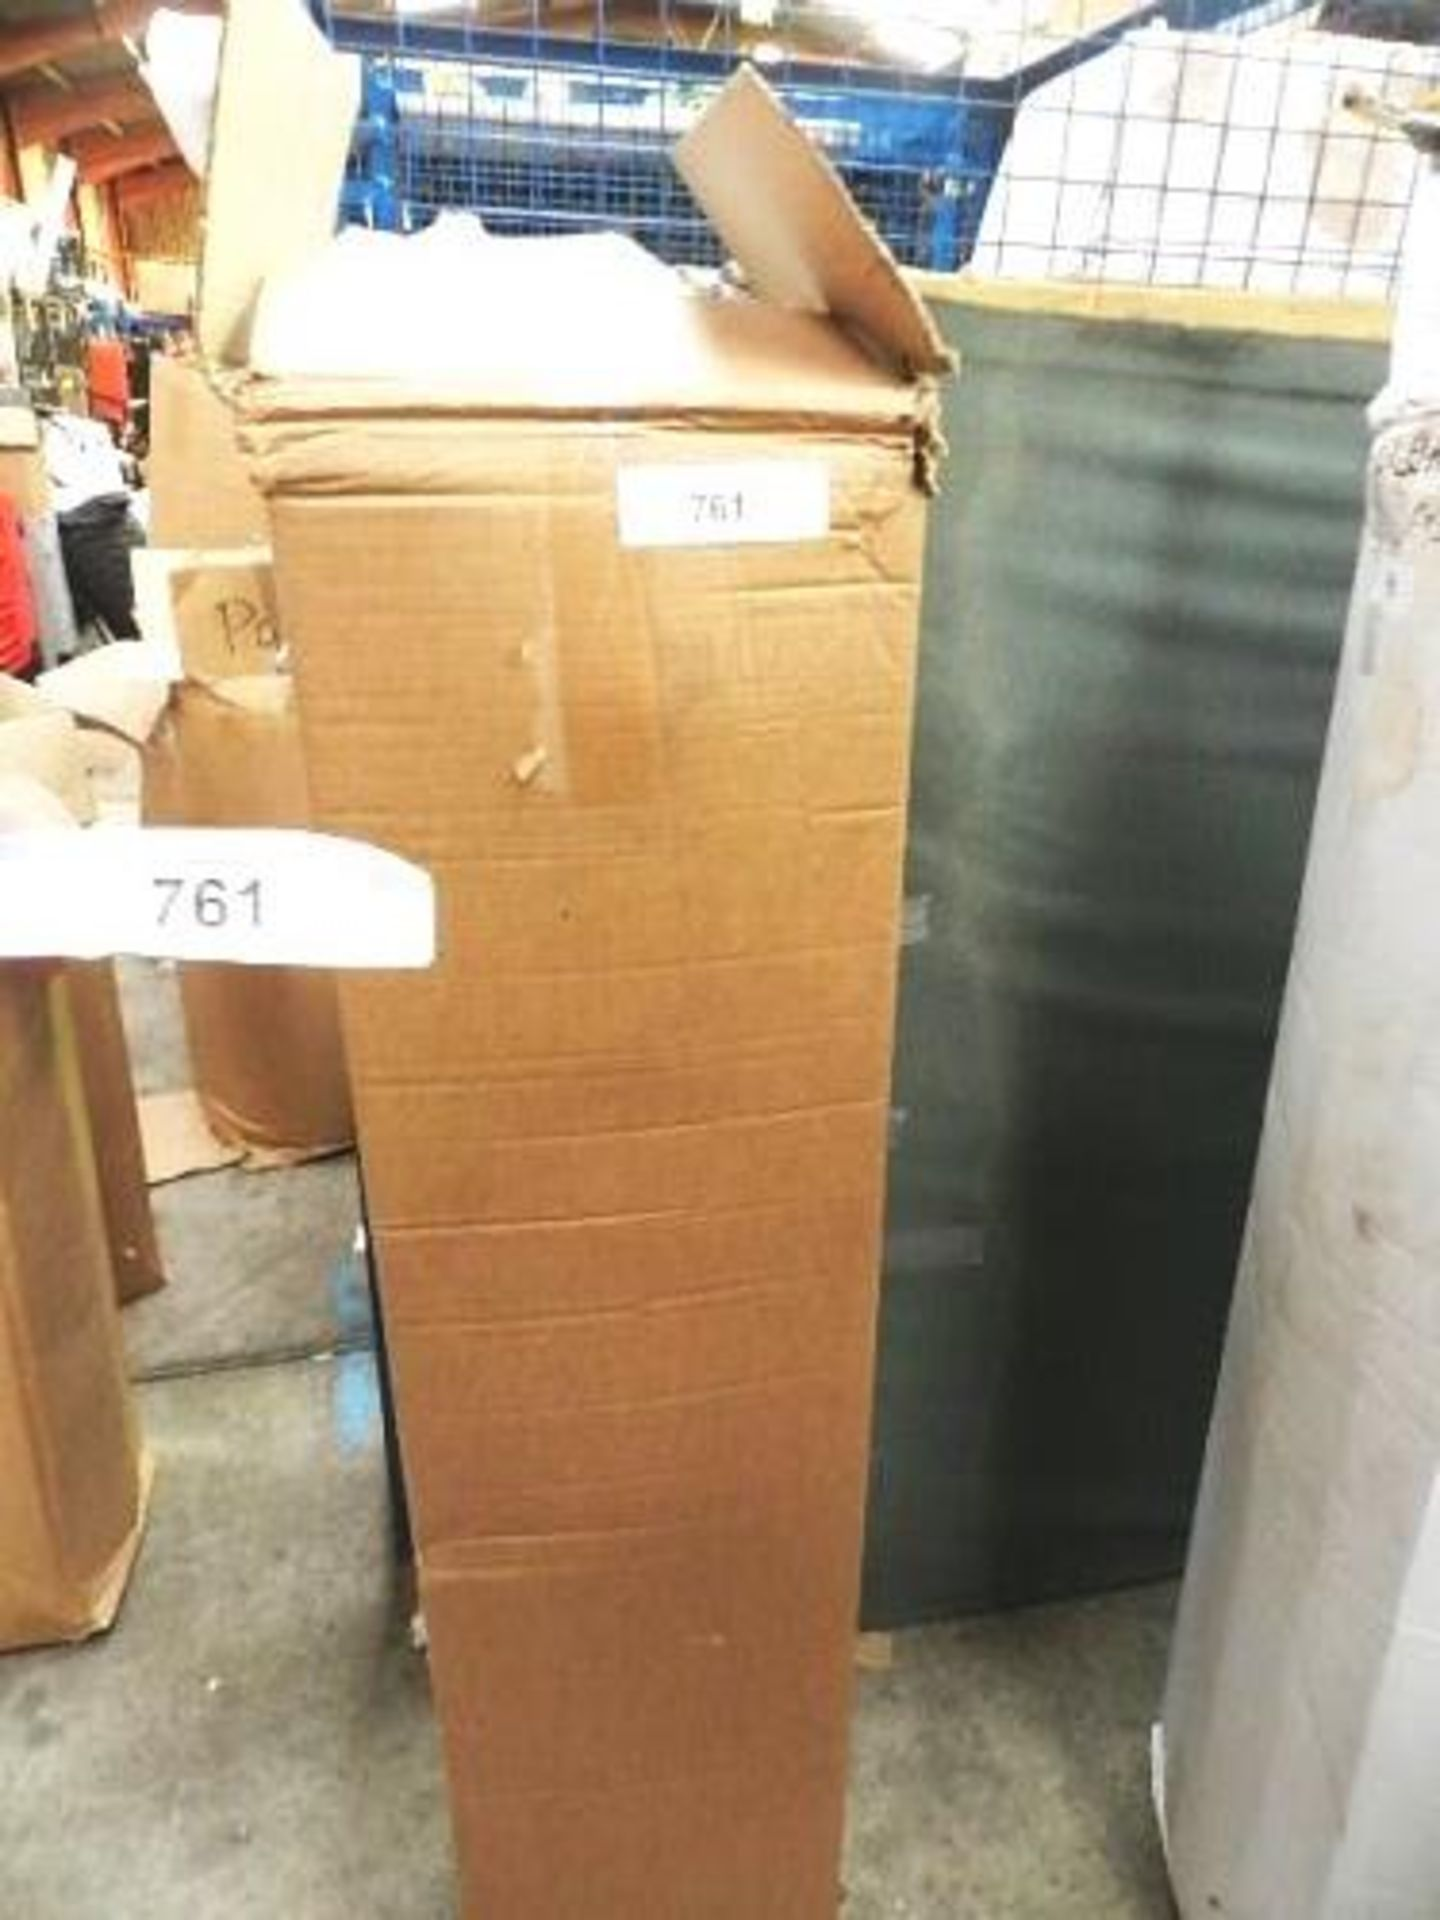 Lot 761 - 1 x sprung double mattress, 4.5ft wide - Sealed new in box (GSF31)